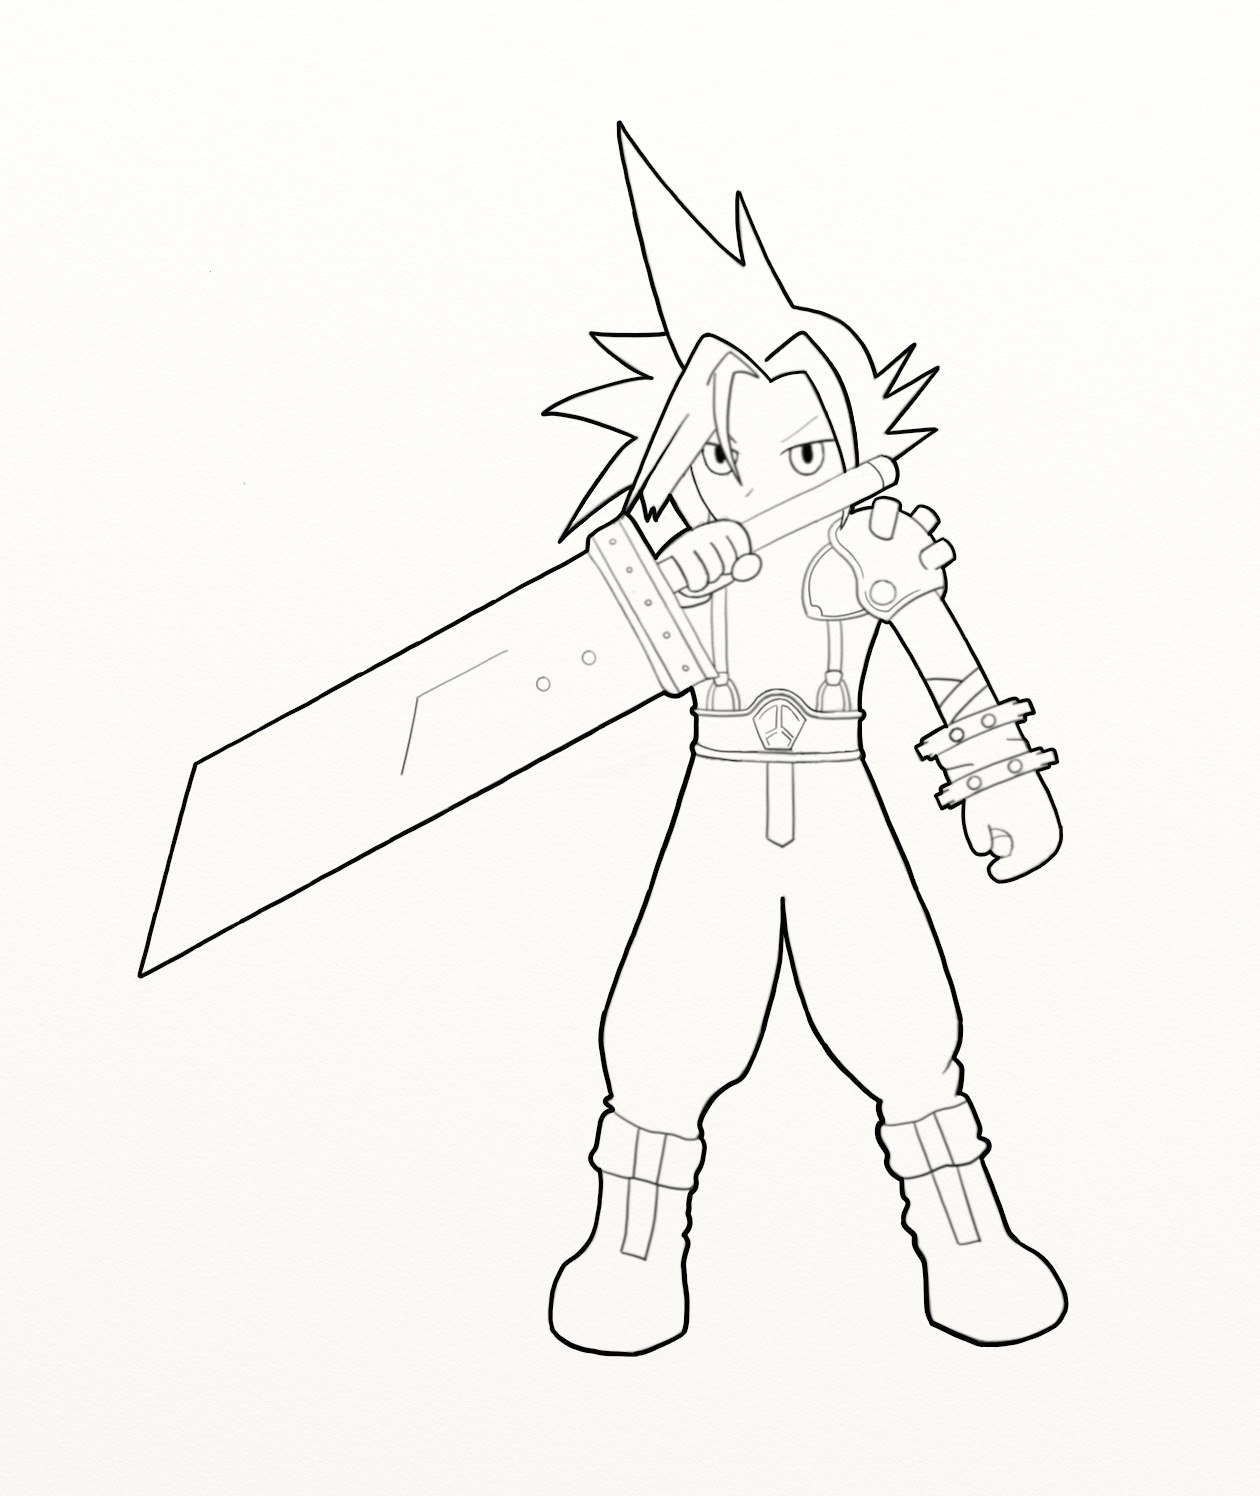 Final Fantasy Coloring Pages ordering Download Of Final Fantasy 7 Fan Art Coloring Pages and Printables Download